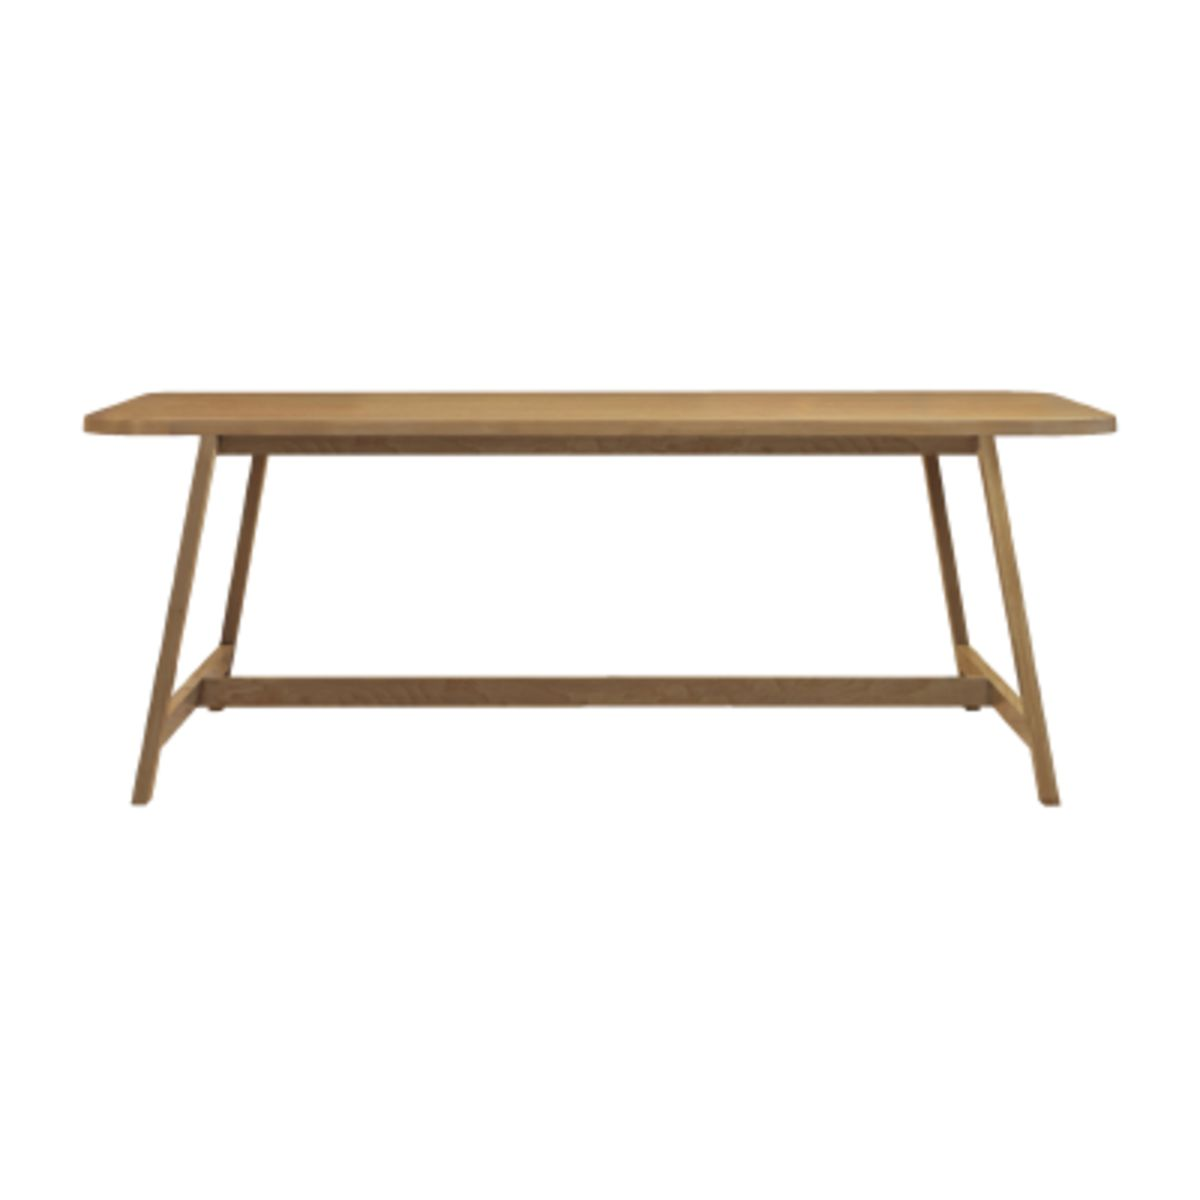 Miraculous Bench Three By Another Country Gmtry Best Dining Table And Chair Ideas Images Gmtryco